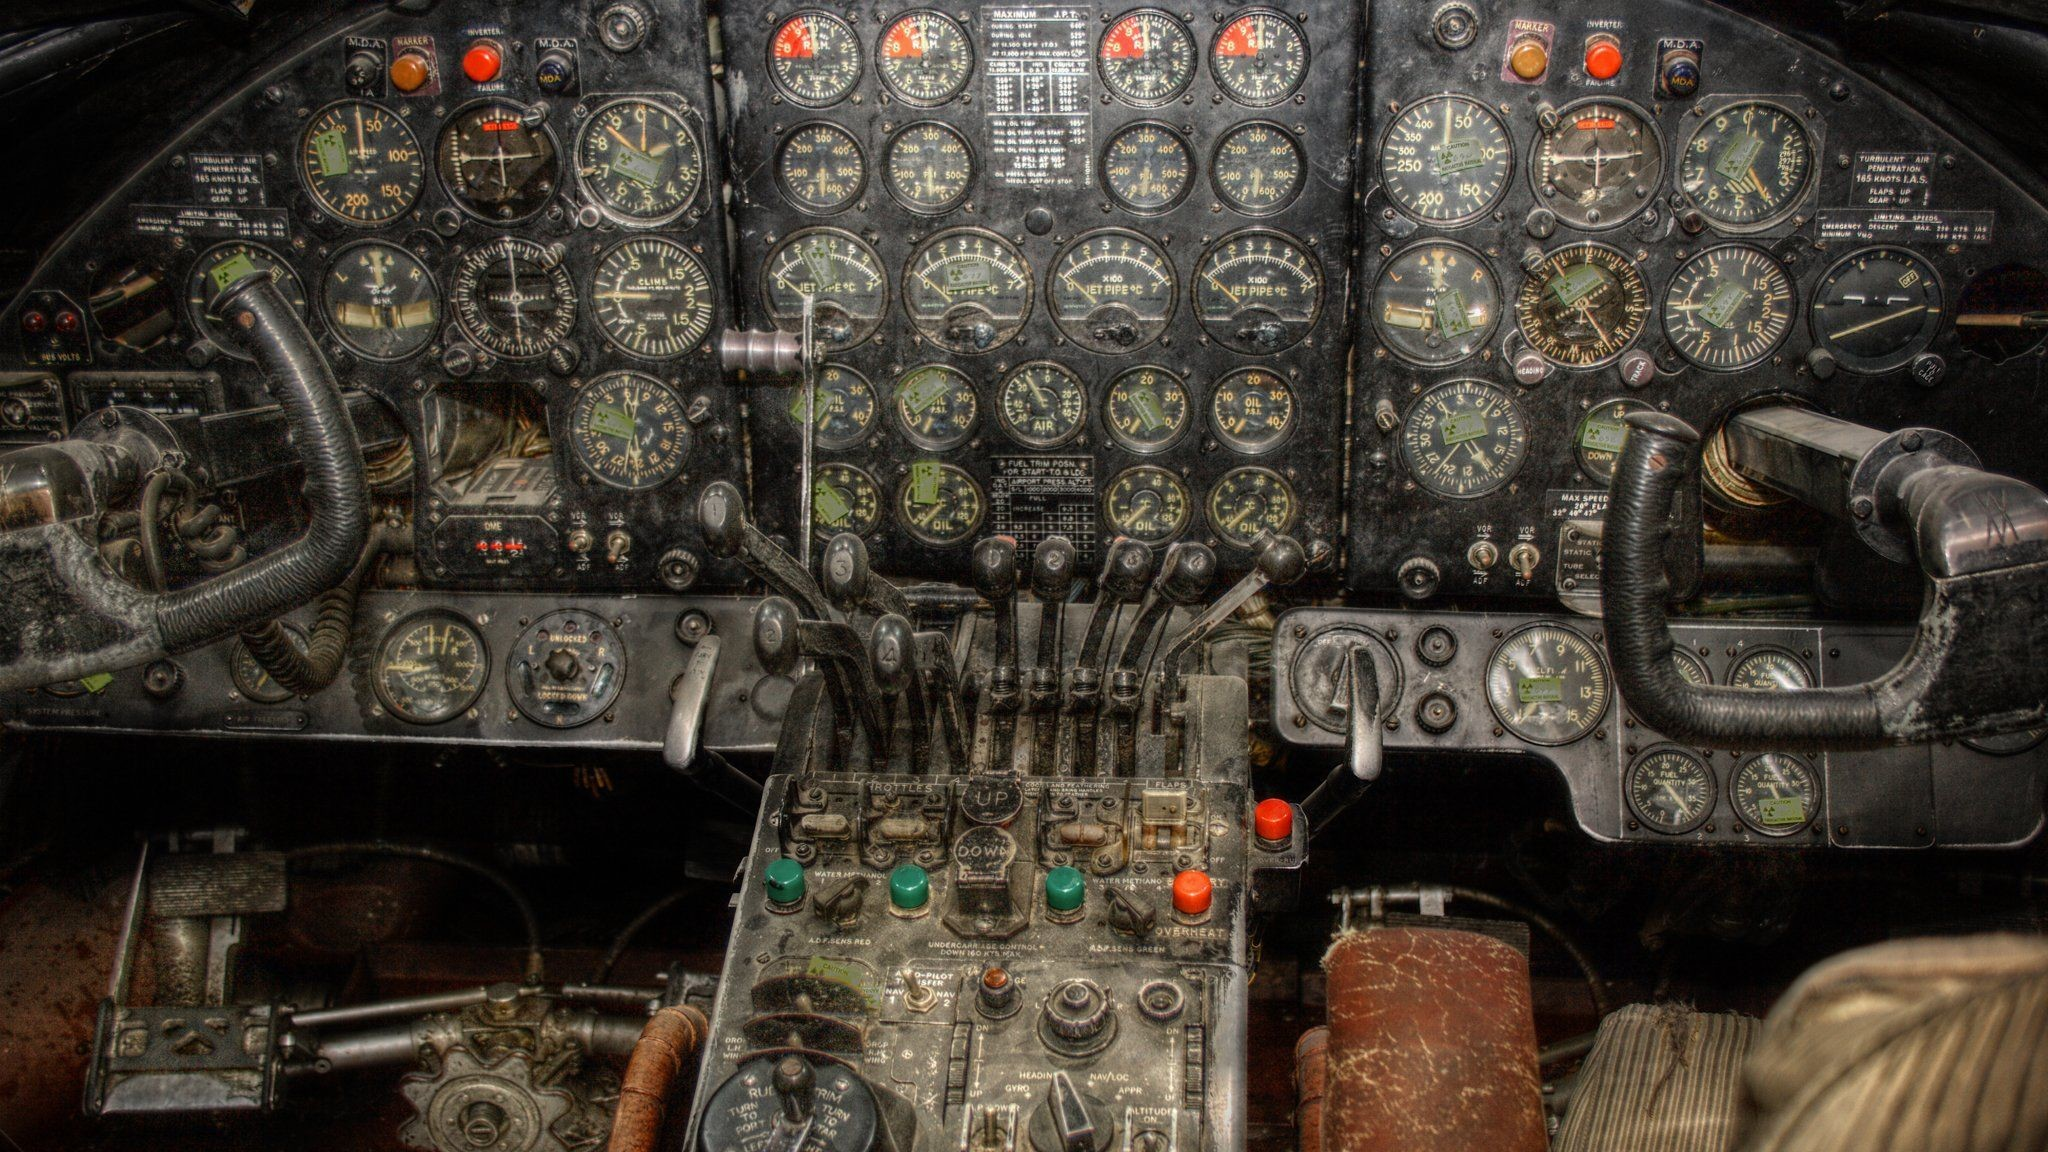 2048x1152 Aircraft cockpit aviation wallpaper